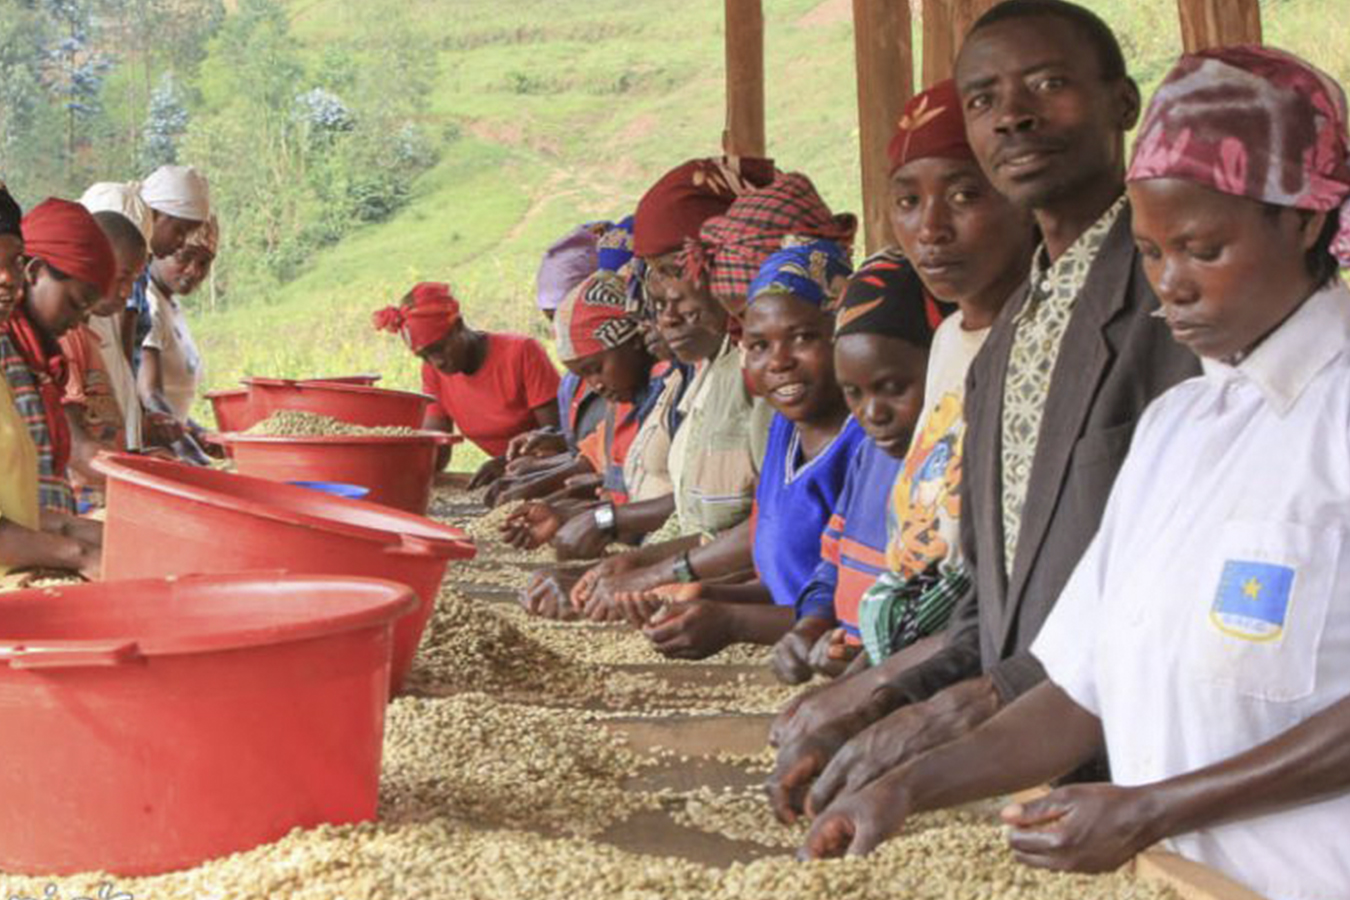 Sorting & Drying Mutovu's Coffee